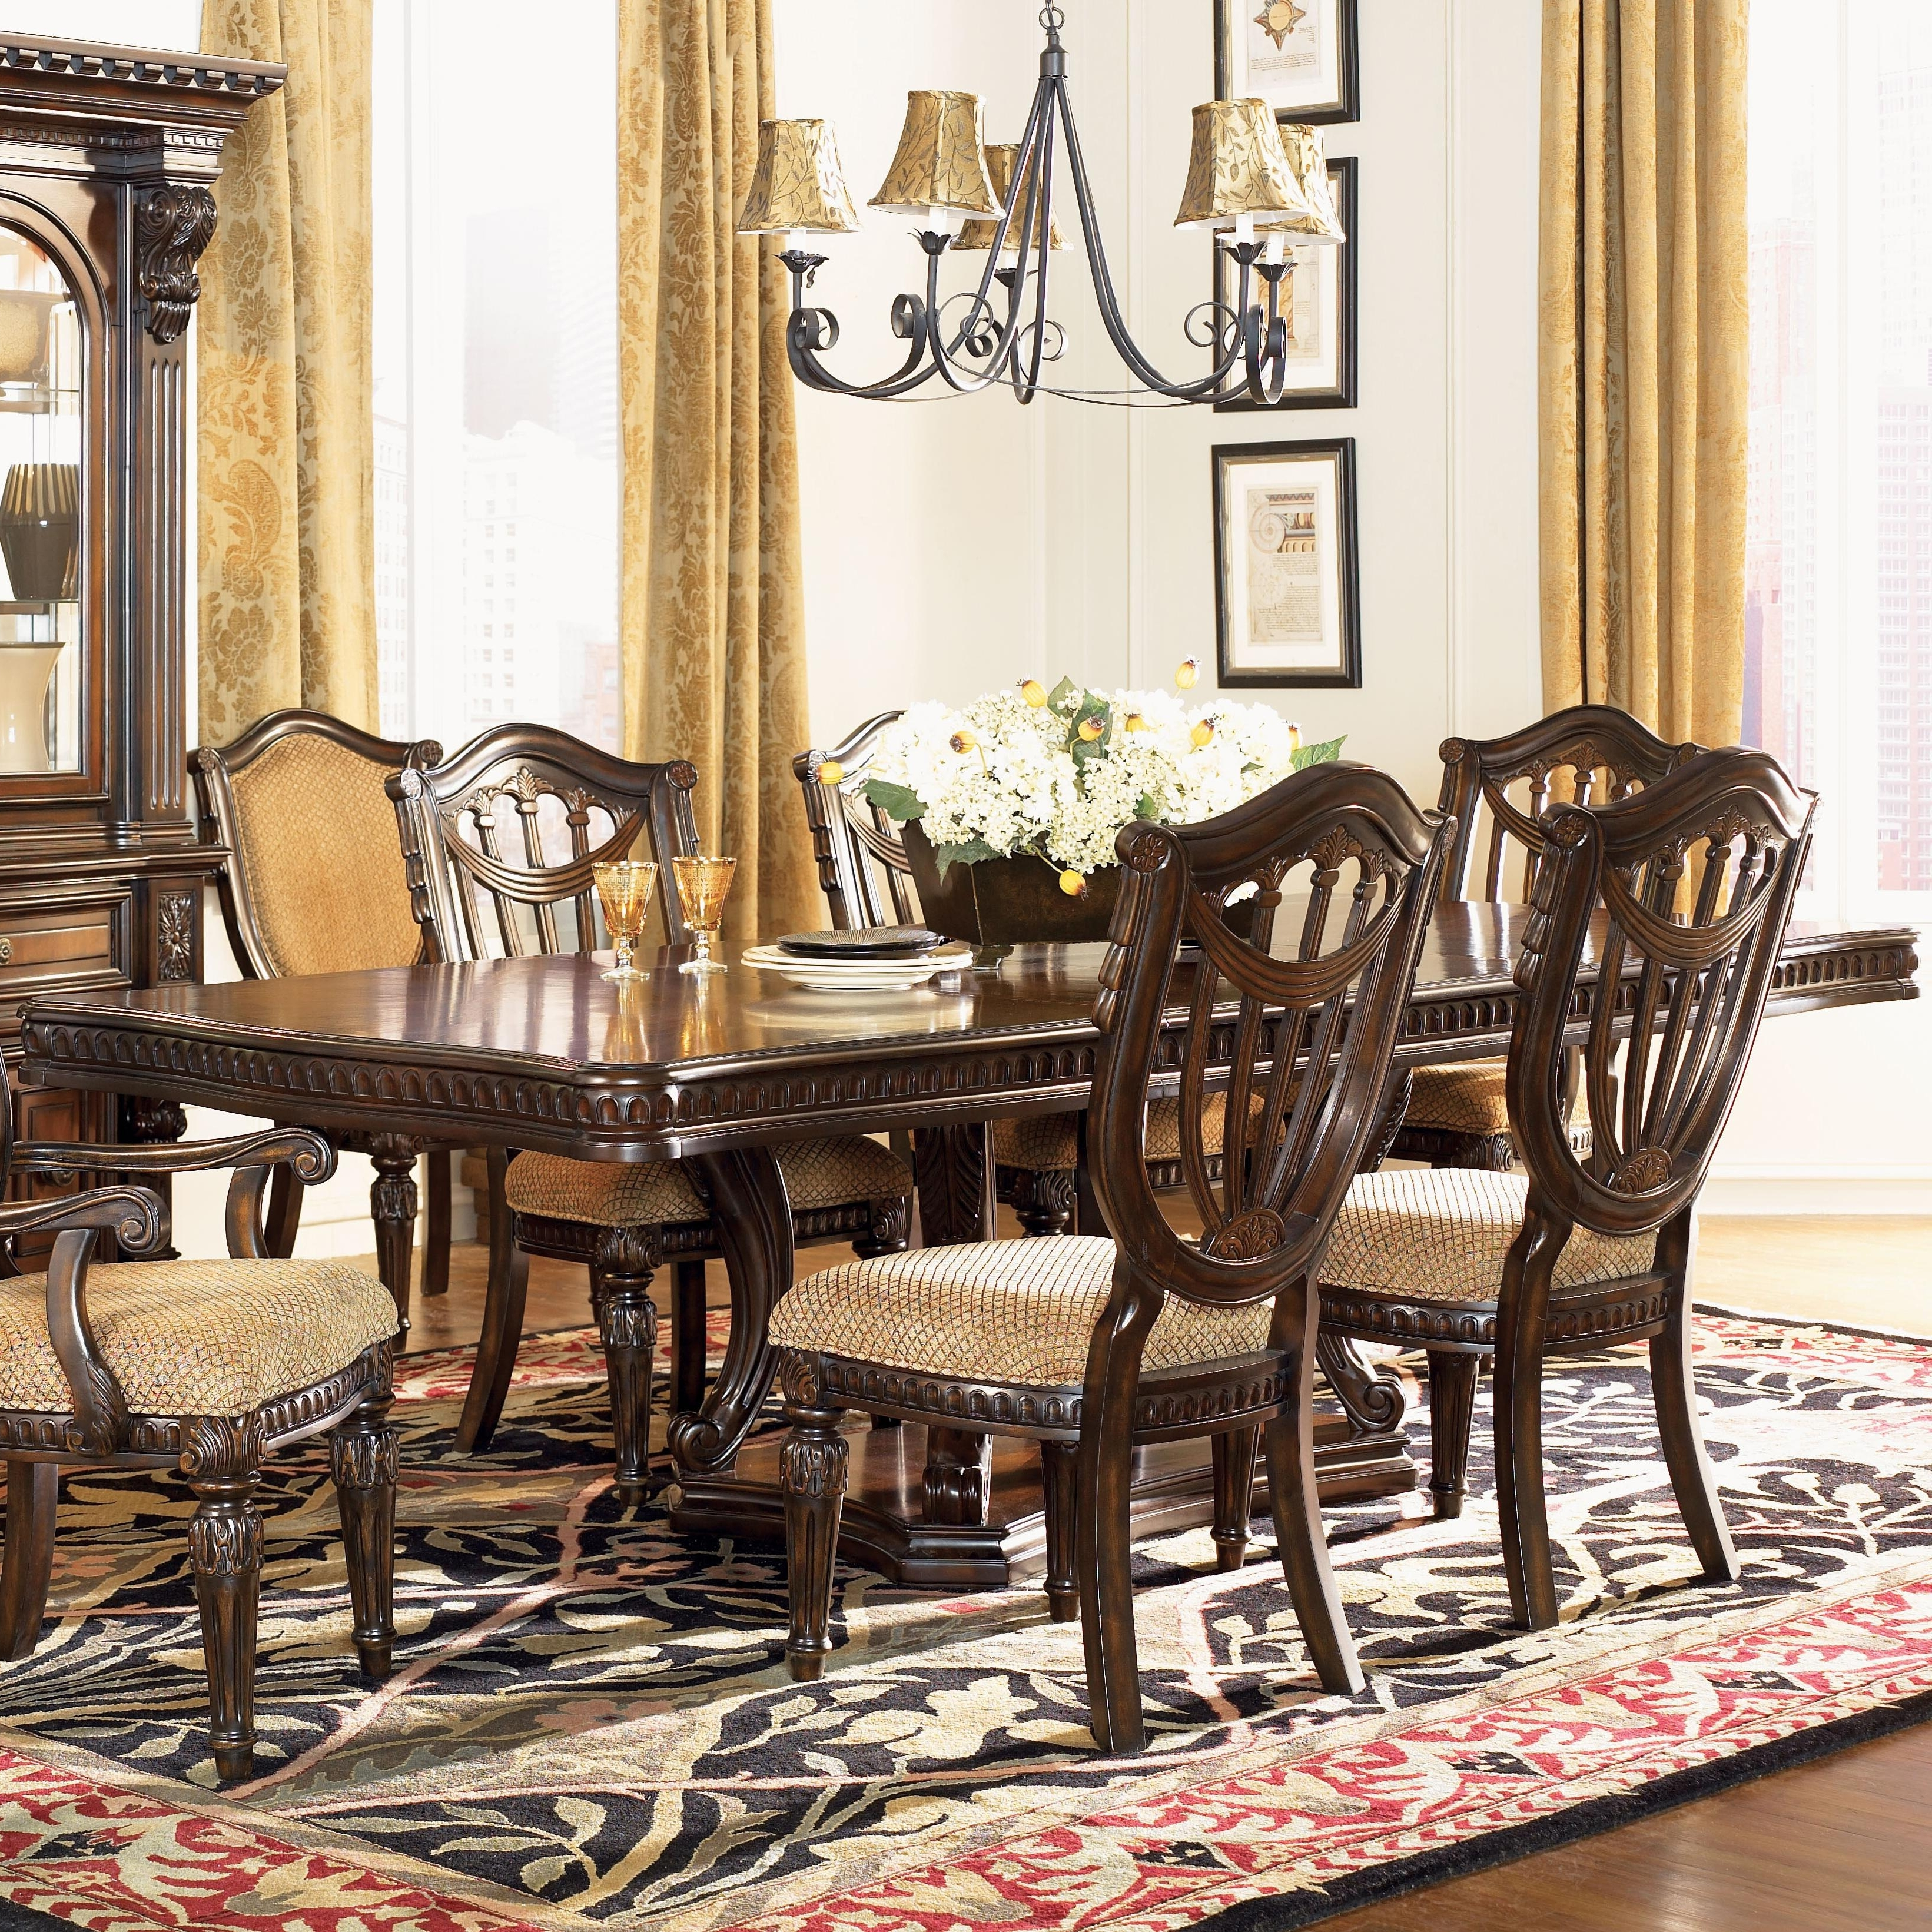 Fairmont Designs Grand Estates Double Pedestal Rectangular Dining Pertaining To Current Royal Dining Tables (View 2 of 25)